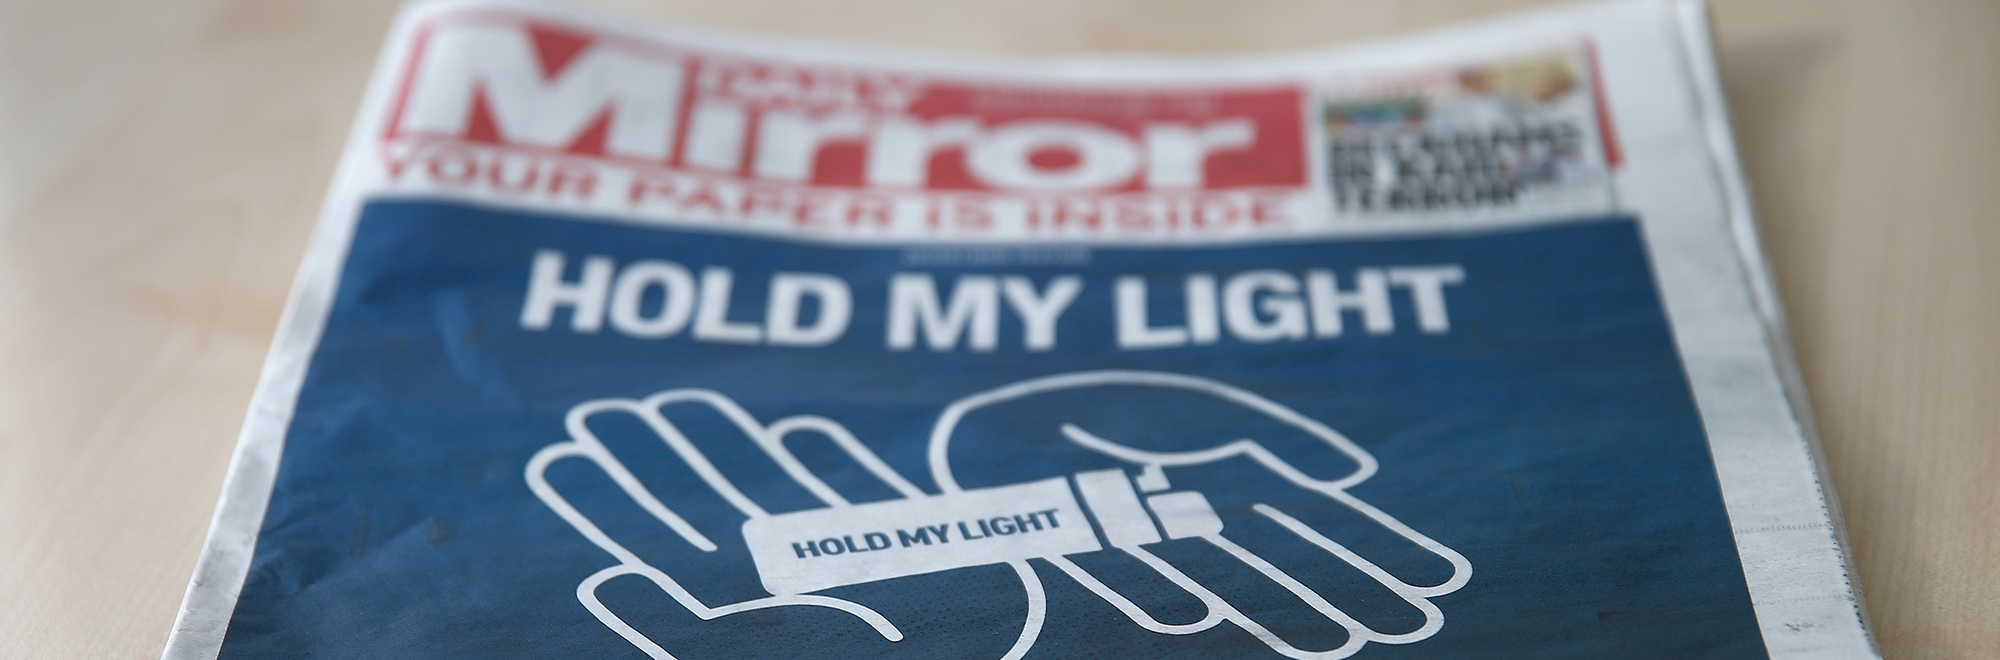 Should tobacco giant Philip Morris's campaign 'Hold My Light' be banned?